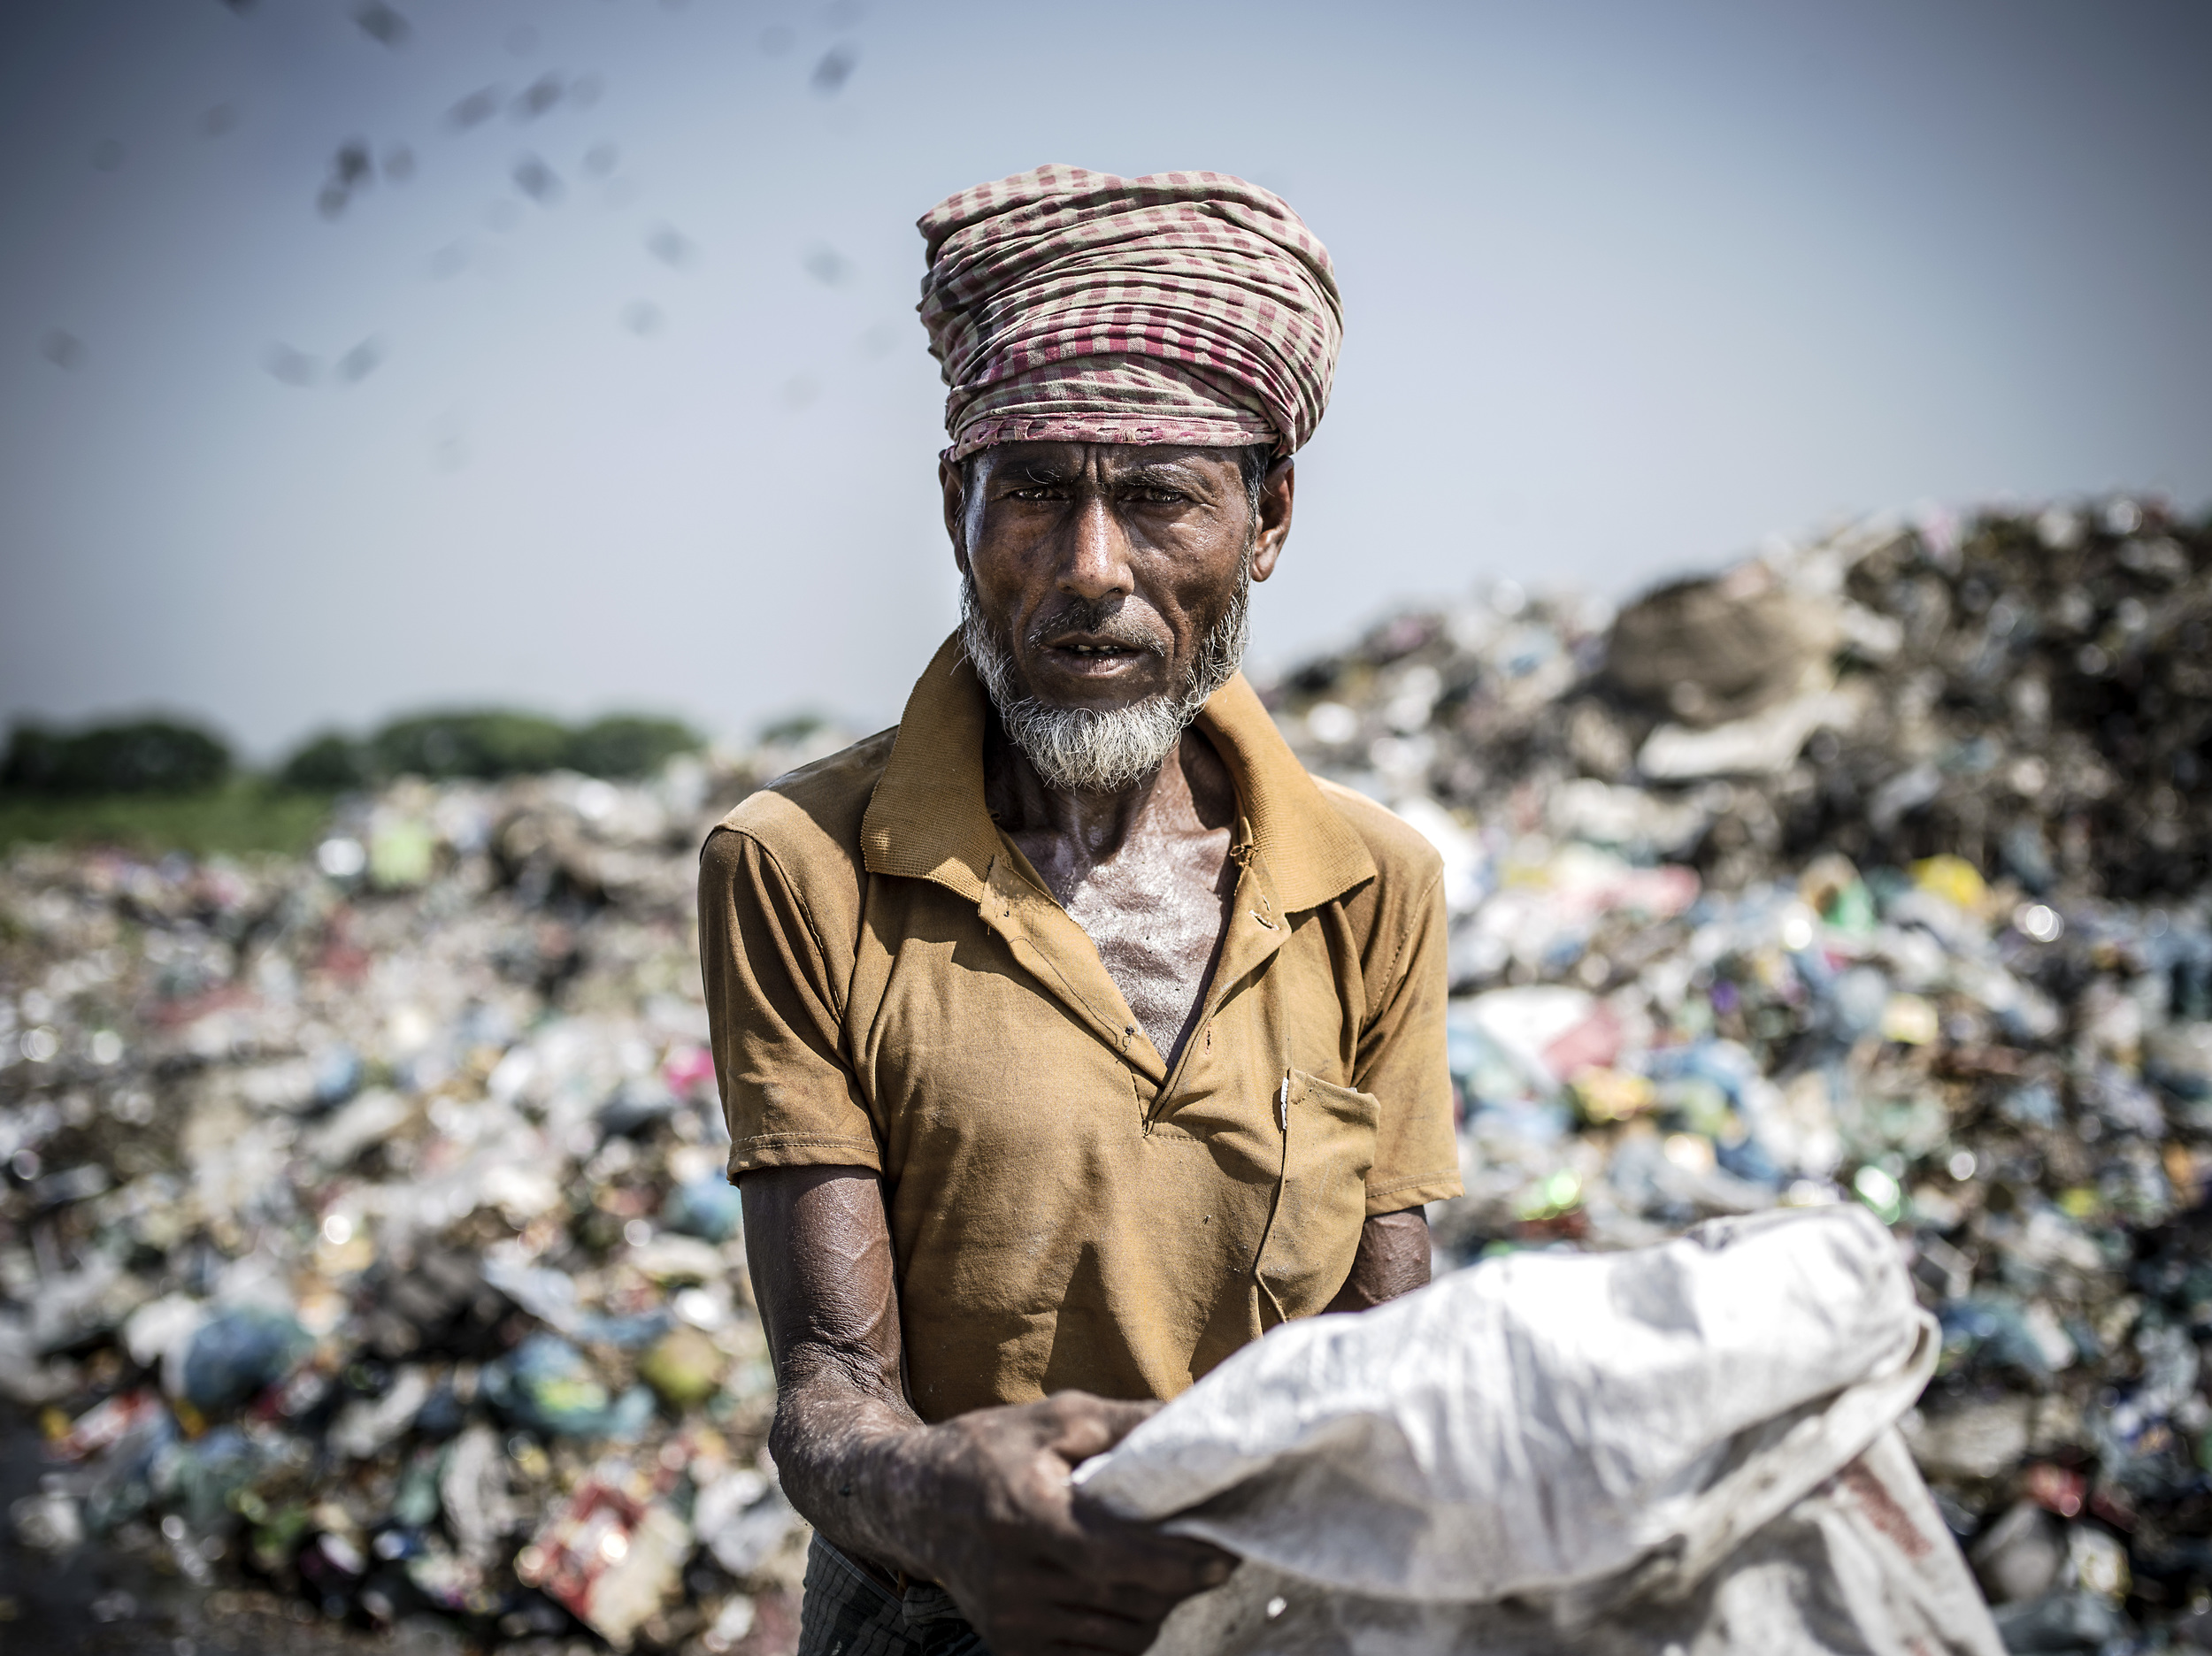 A man  informally recycling  at Parar Chokh Landfill in Sylet, Bangladesh.